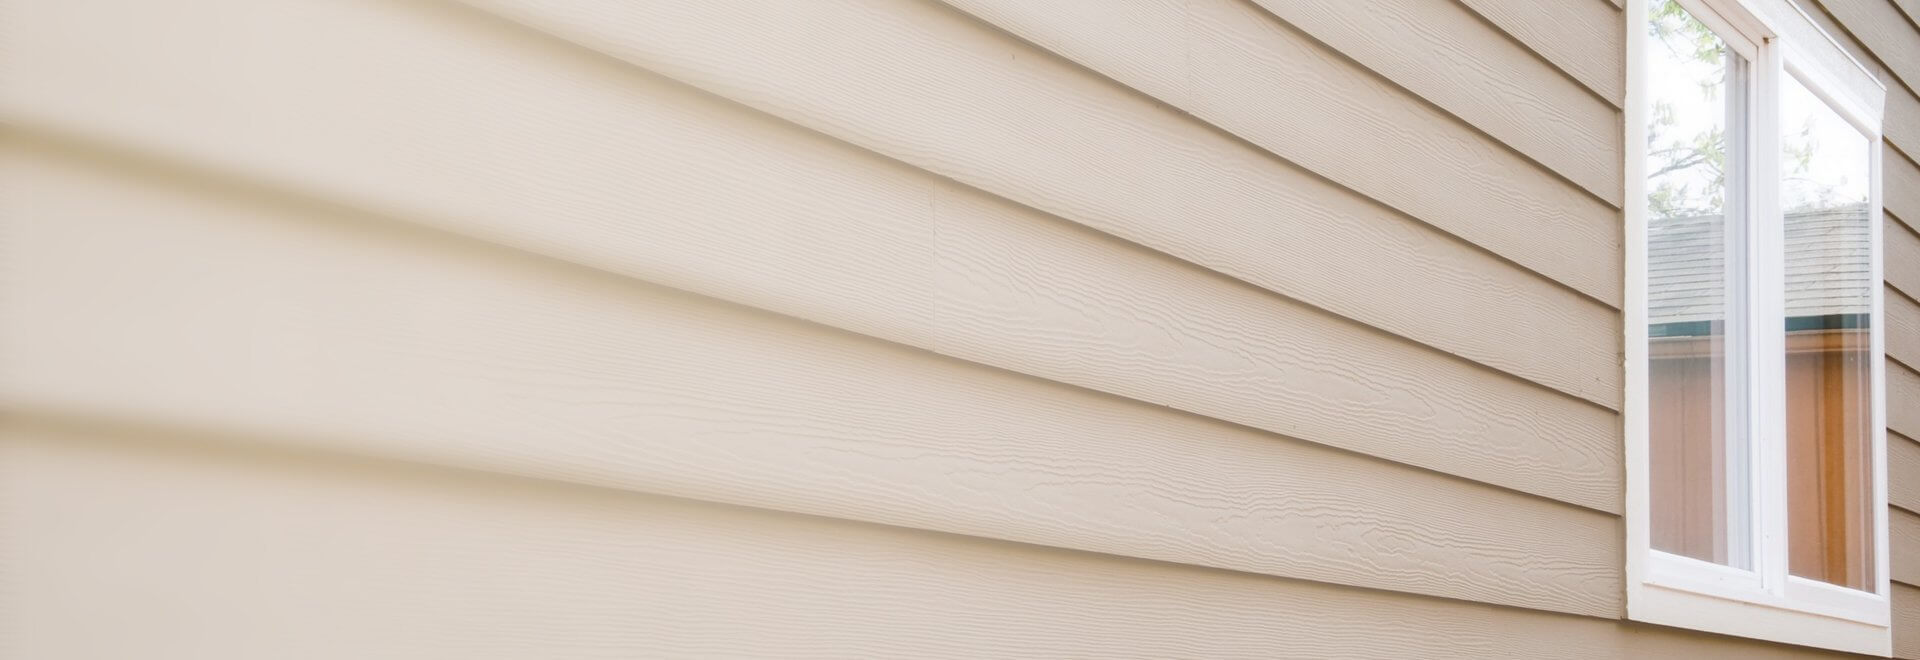 Austin Siding Installations